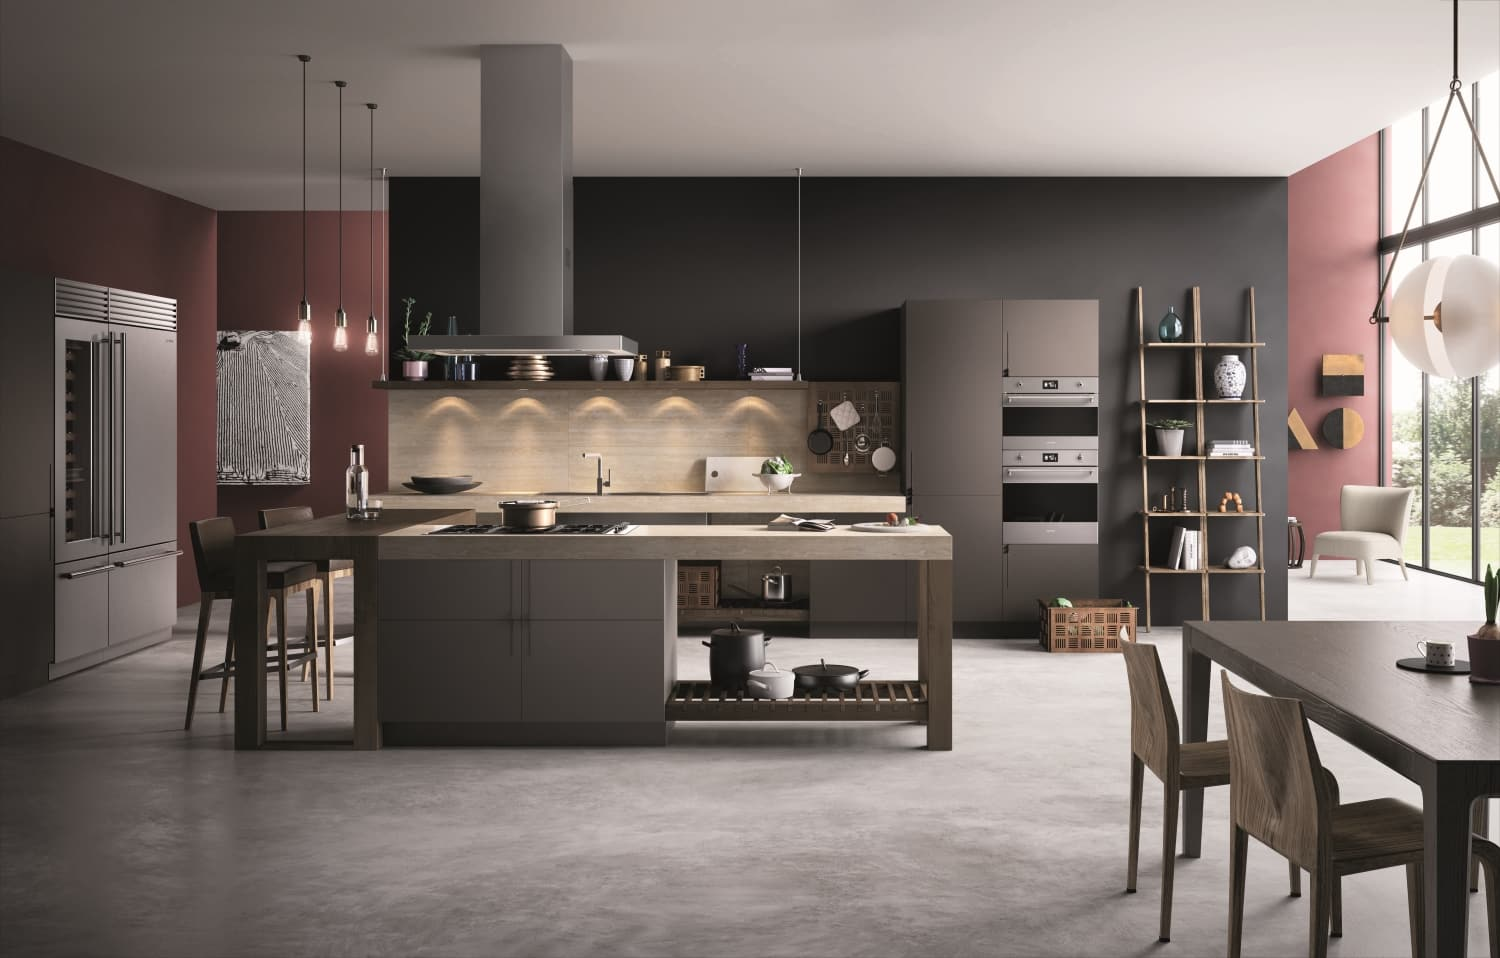 Smeg launches new range of kitchen appliances for Decoracion de cocinas